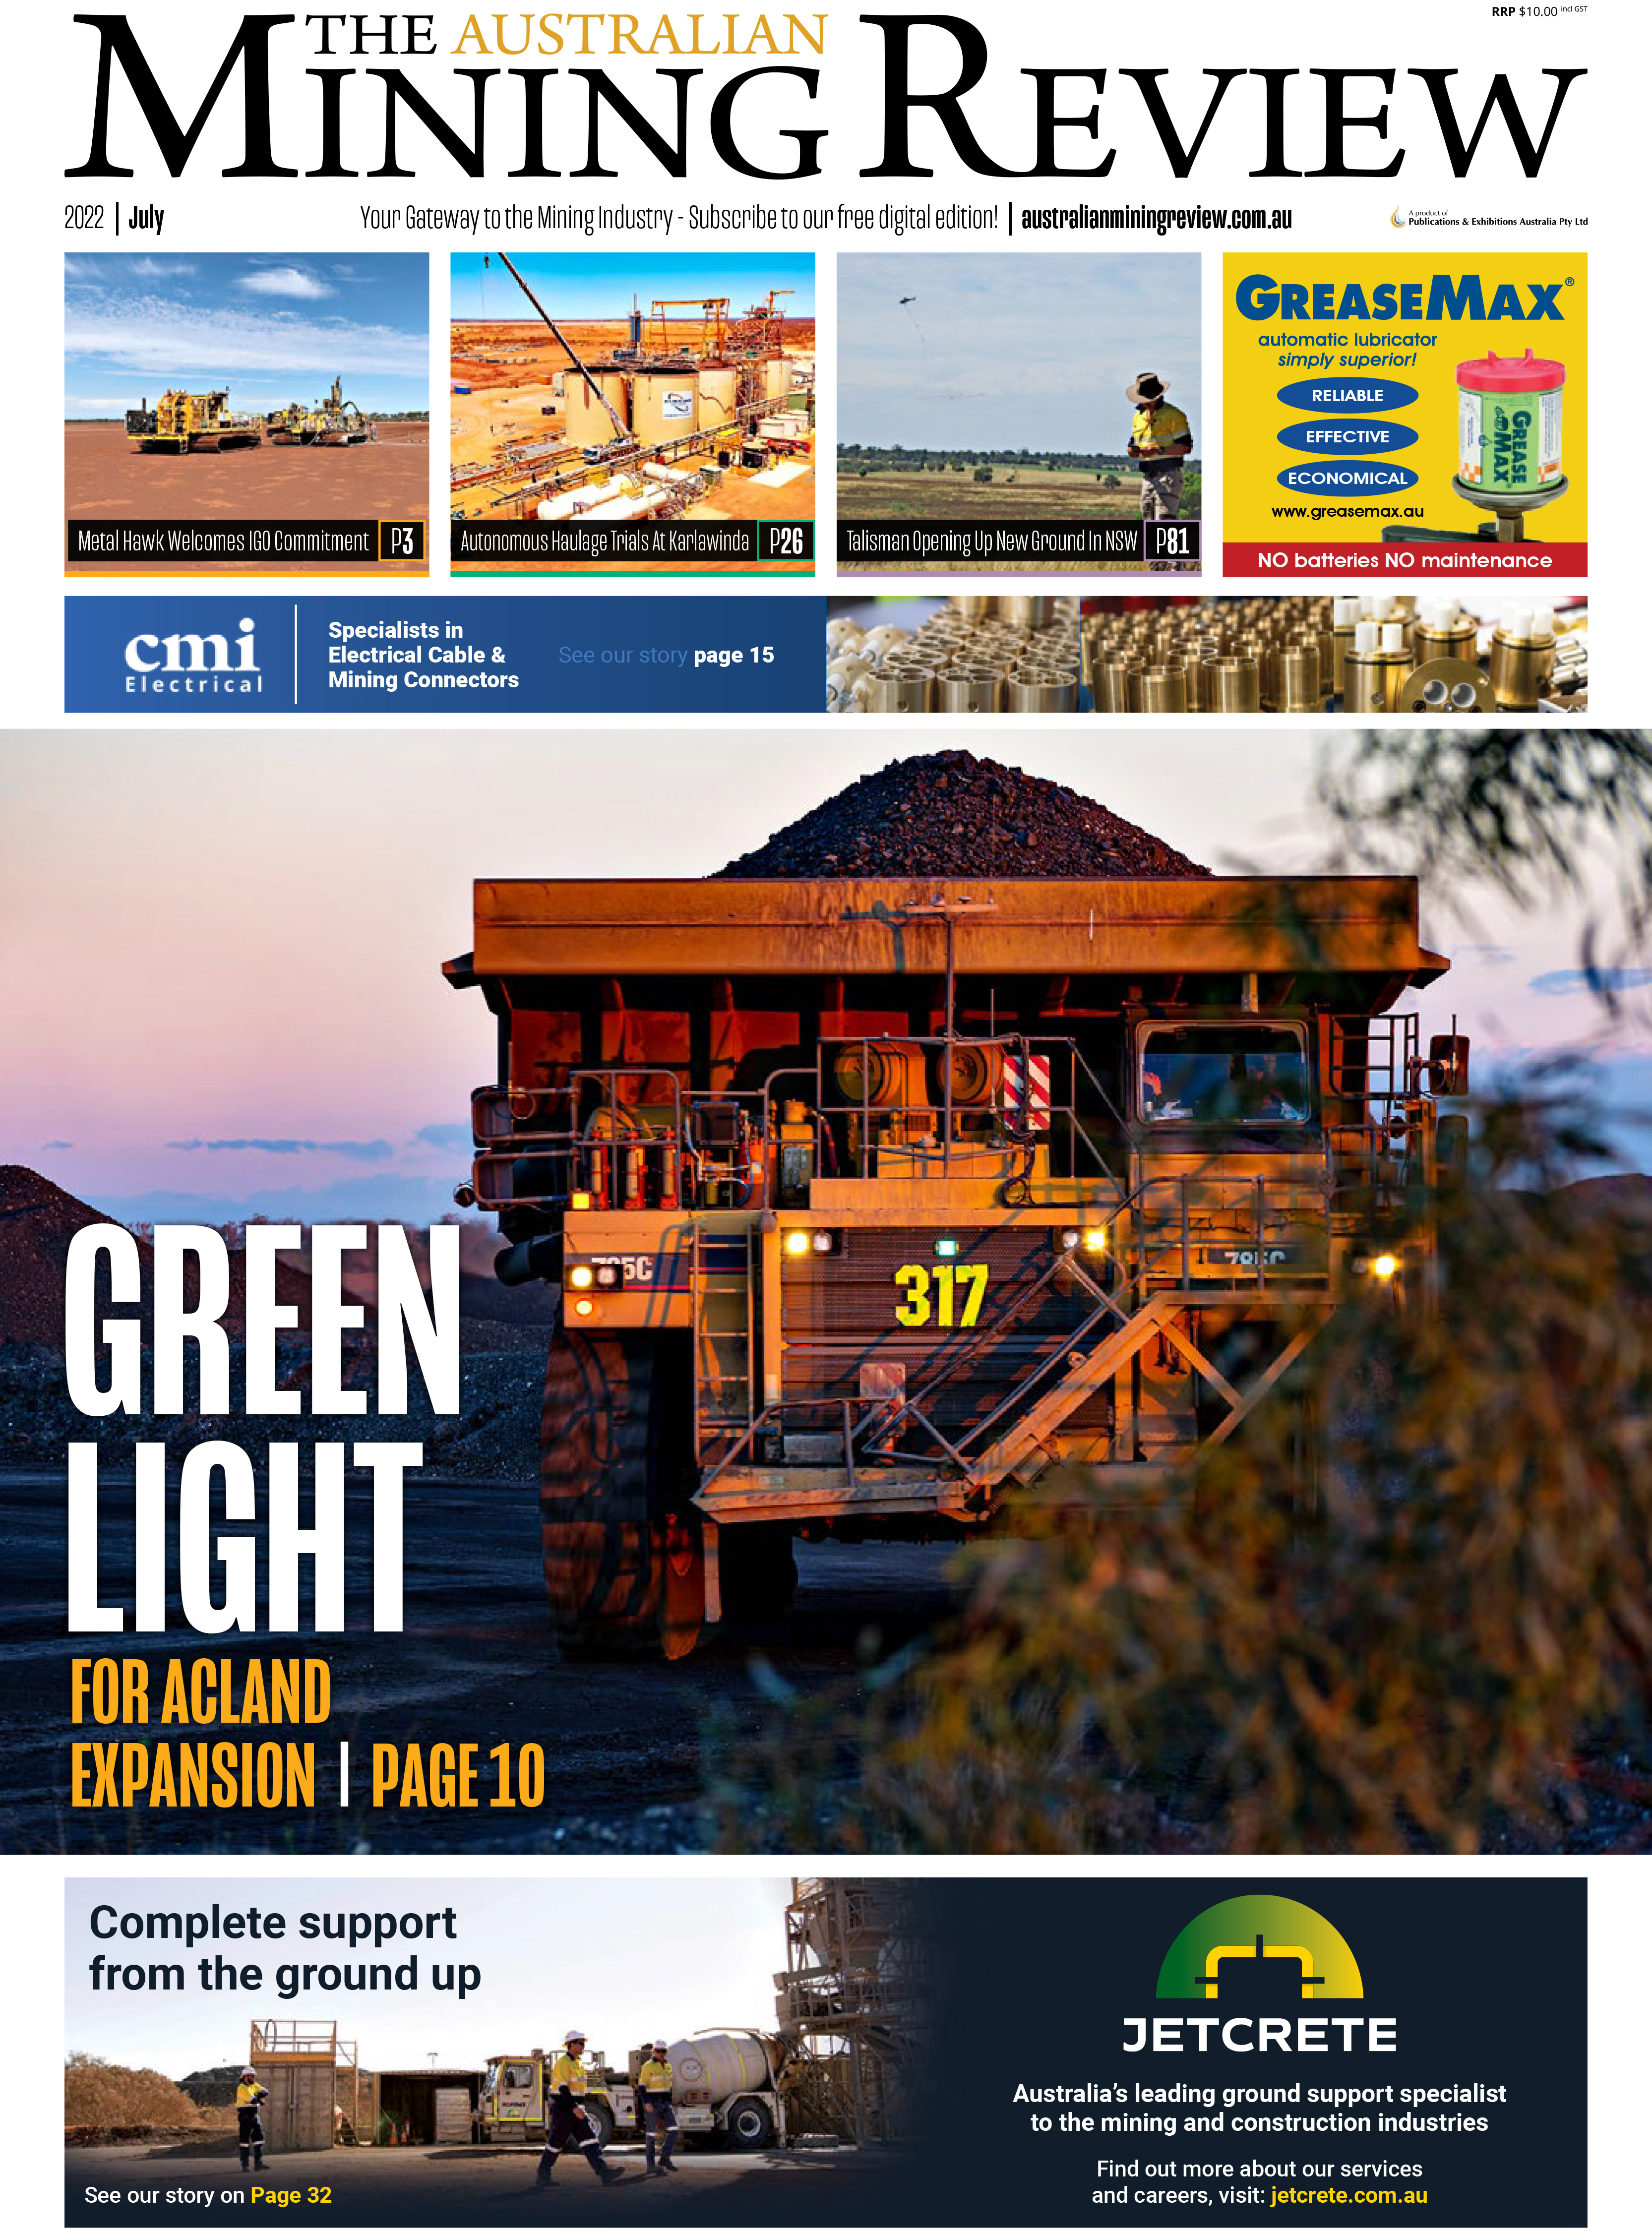 The Australian Mining Review: Latest Edition